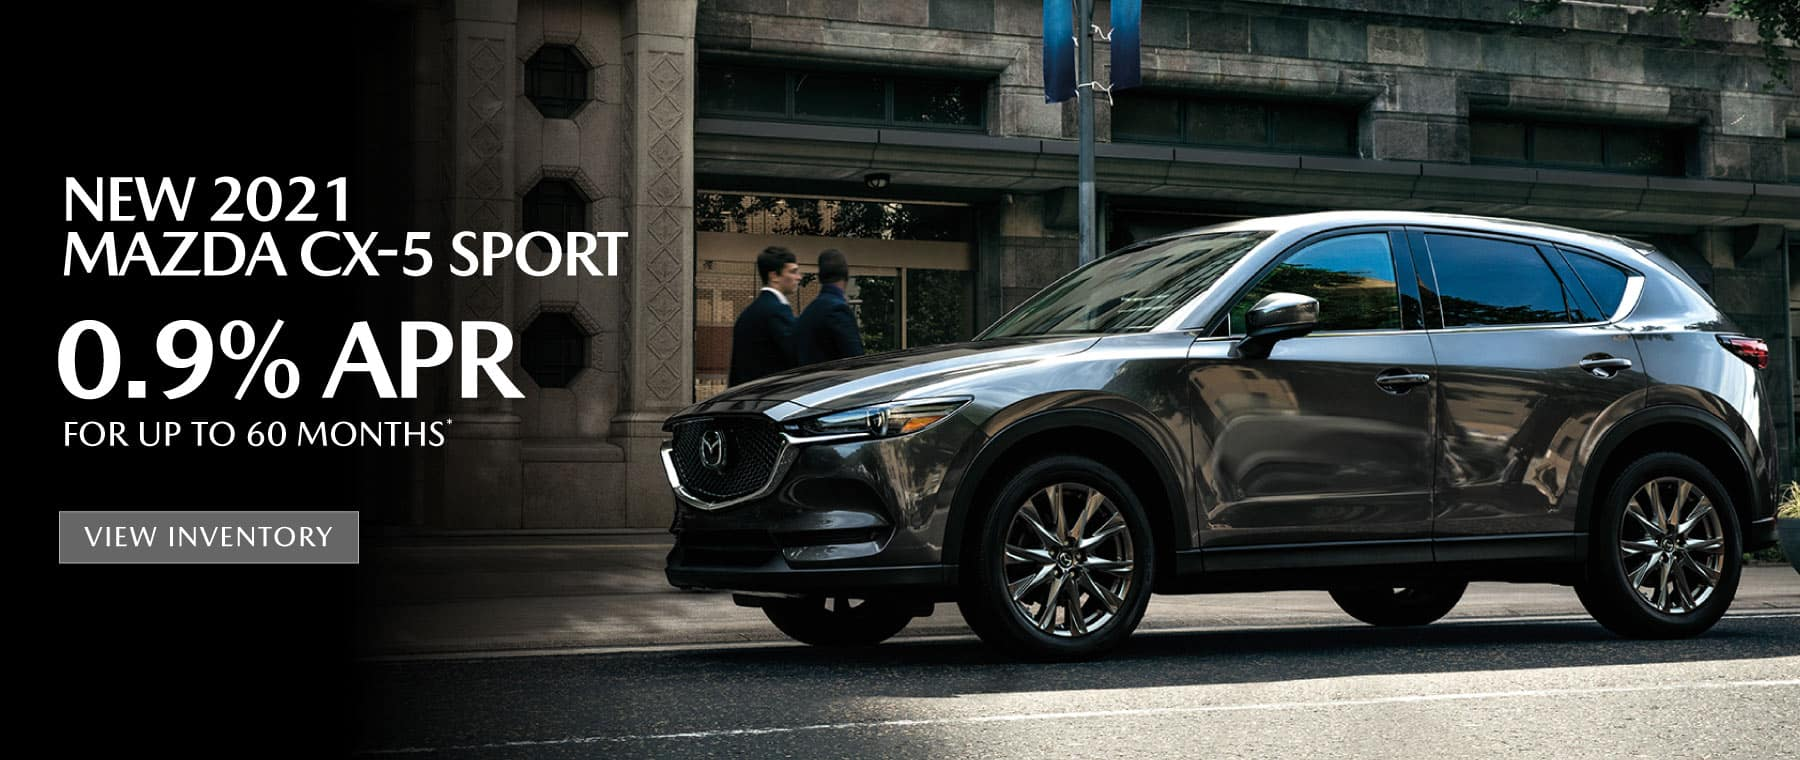 NEW 2021 MAZA CX-5 – 0.9% APR for up to 60 months*